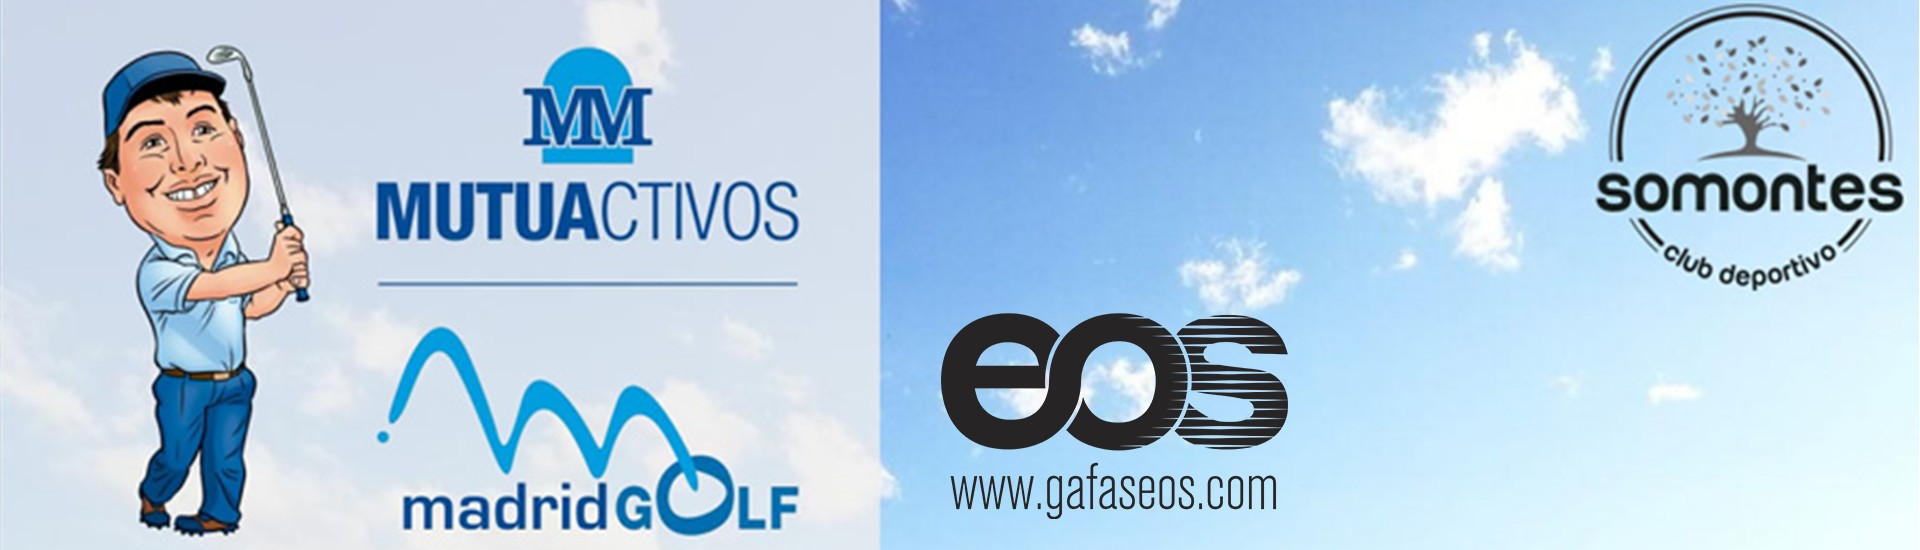 Gafas EOS en Madrid Golf 2018